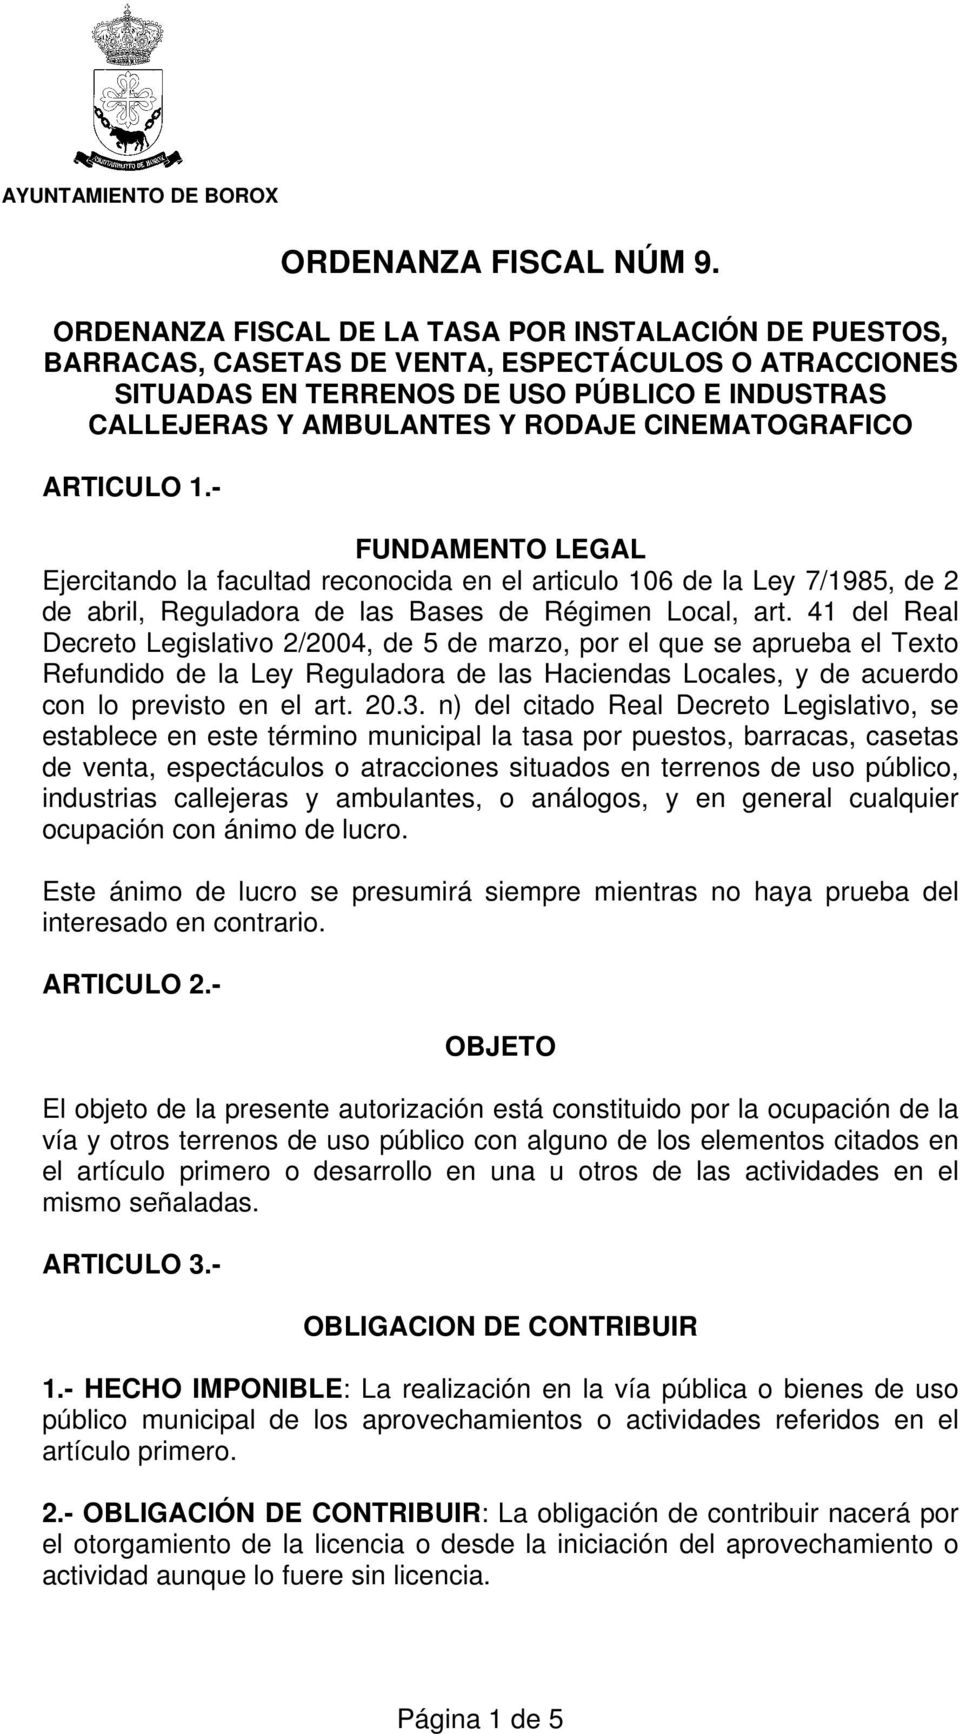 CINEMATOGRAFICO ARTICULO 1.- FUNDAMENTO LEGAL Ejercitando la facultad reconocida en el articulo 106 de la Ley 7/1985, de 2 de abril, Reguladora de las Bases de Régimen Local, art.